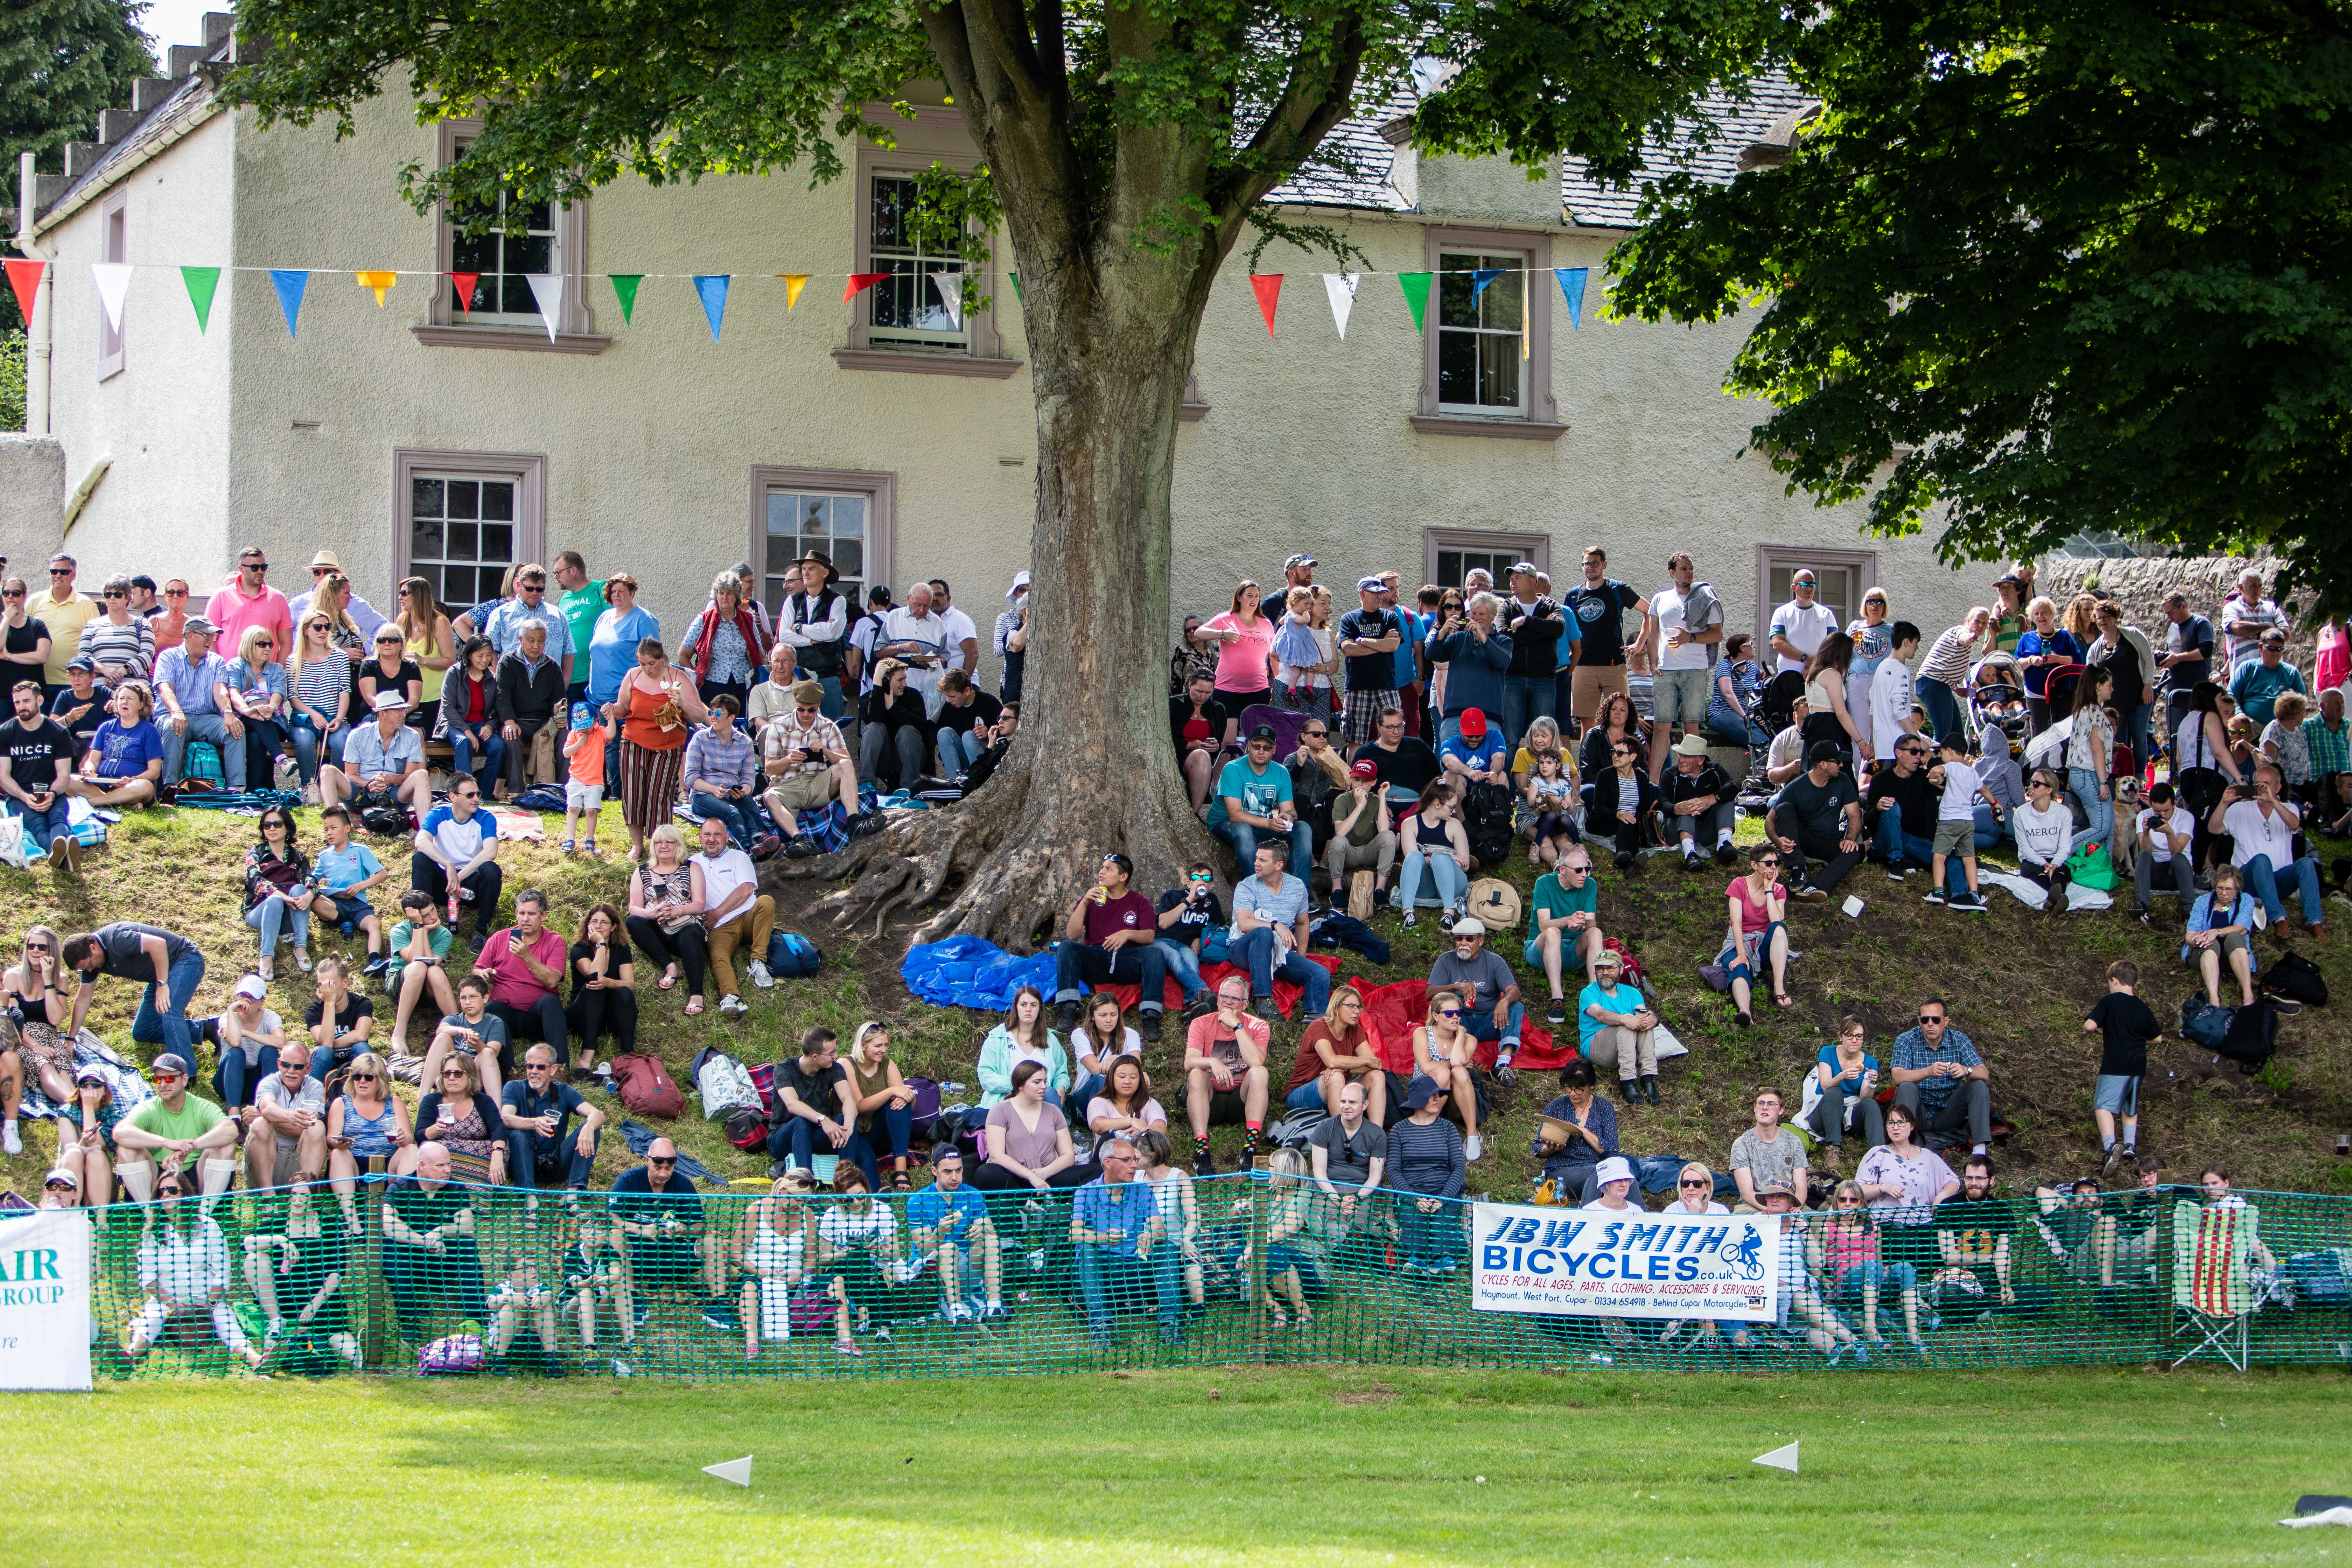 Crowds gather on the banks in the scorching heat of summer to watch Ceres Highland Games.